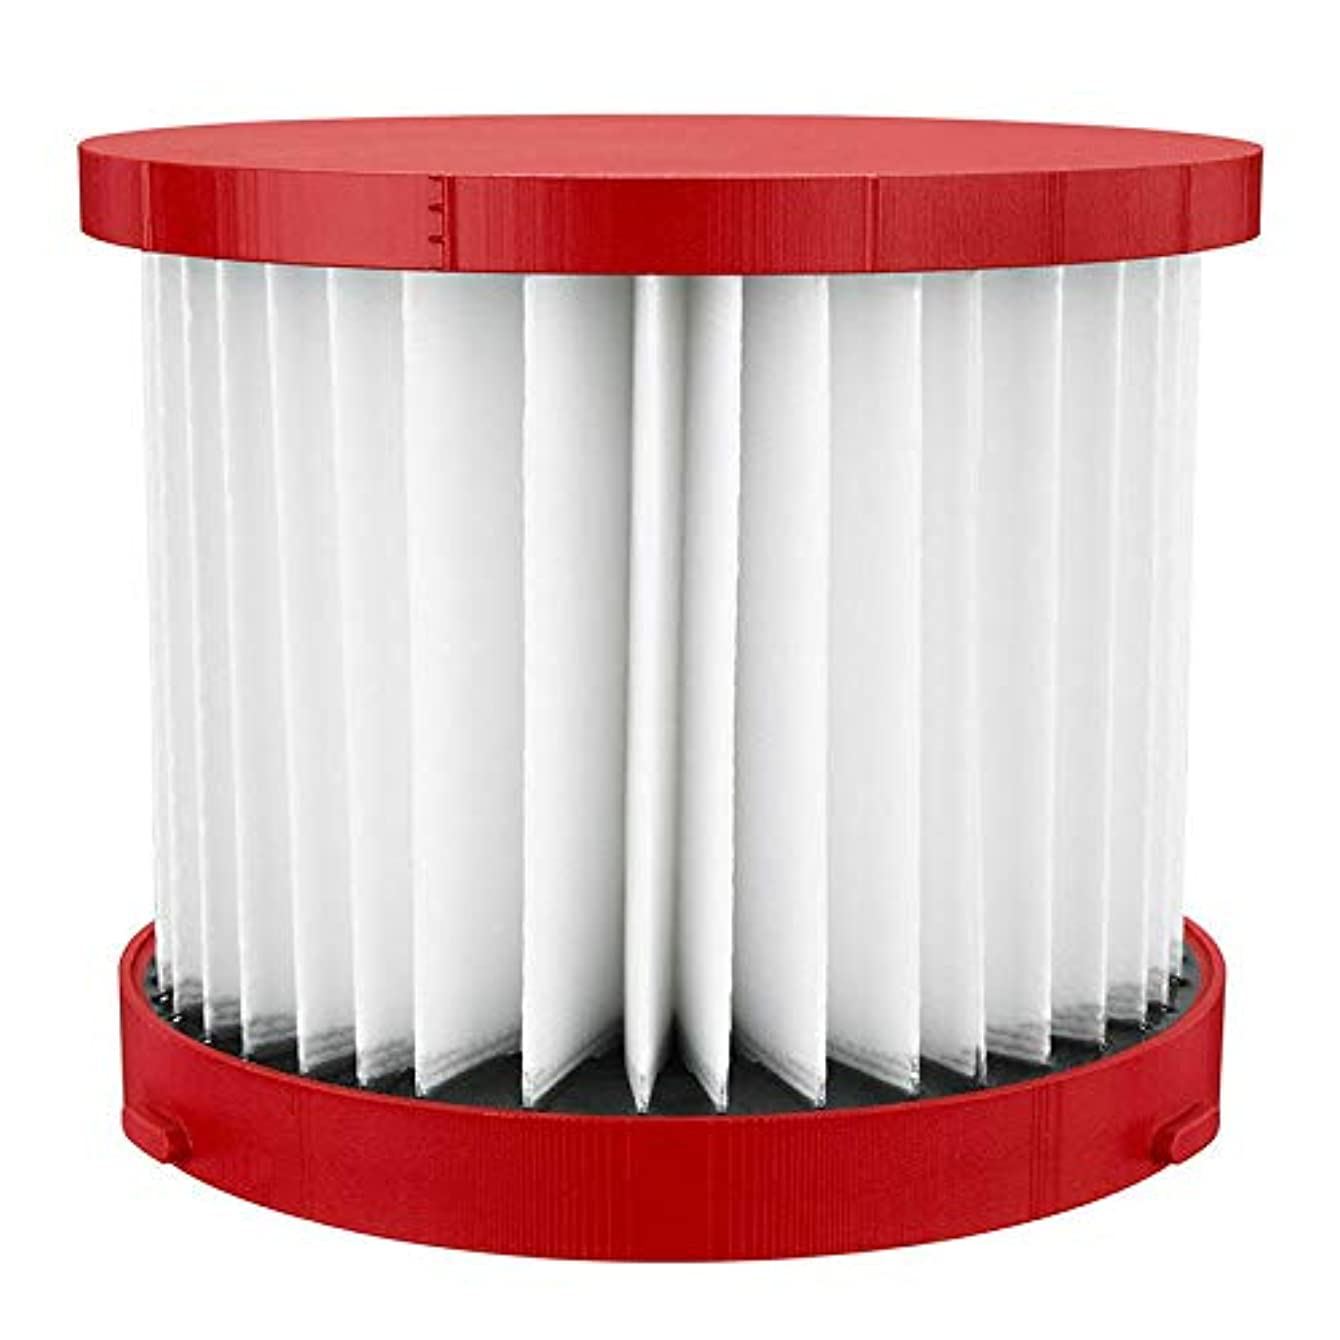 SODIAL Hepa Filter for Milwaukee 49-90-1900 Wet/Dry Vac 0780-20/0880-20 Vacuum Cleaner Parts